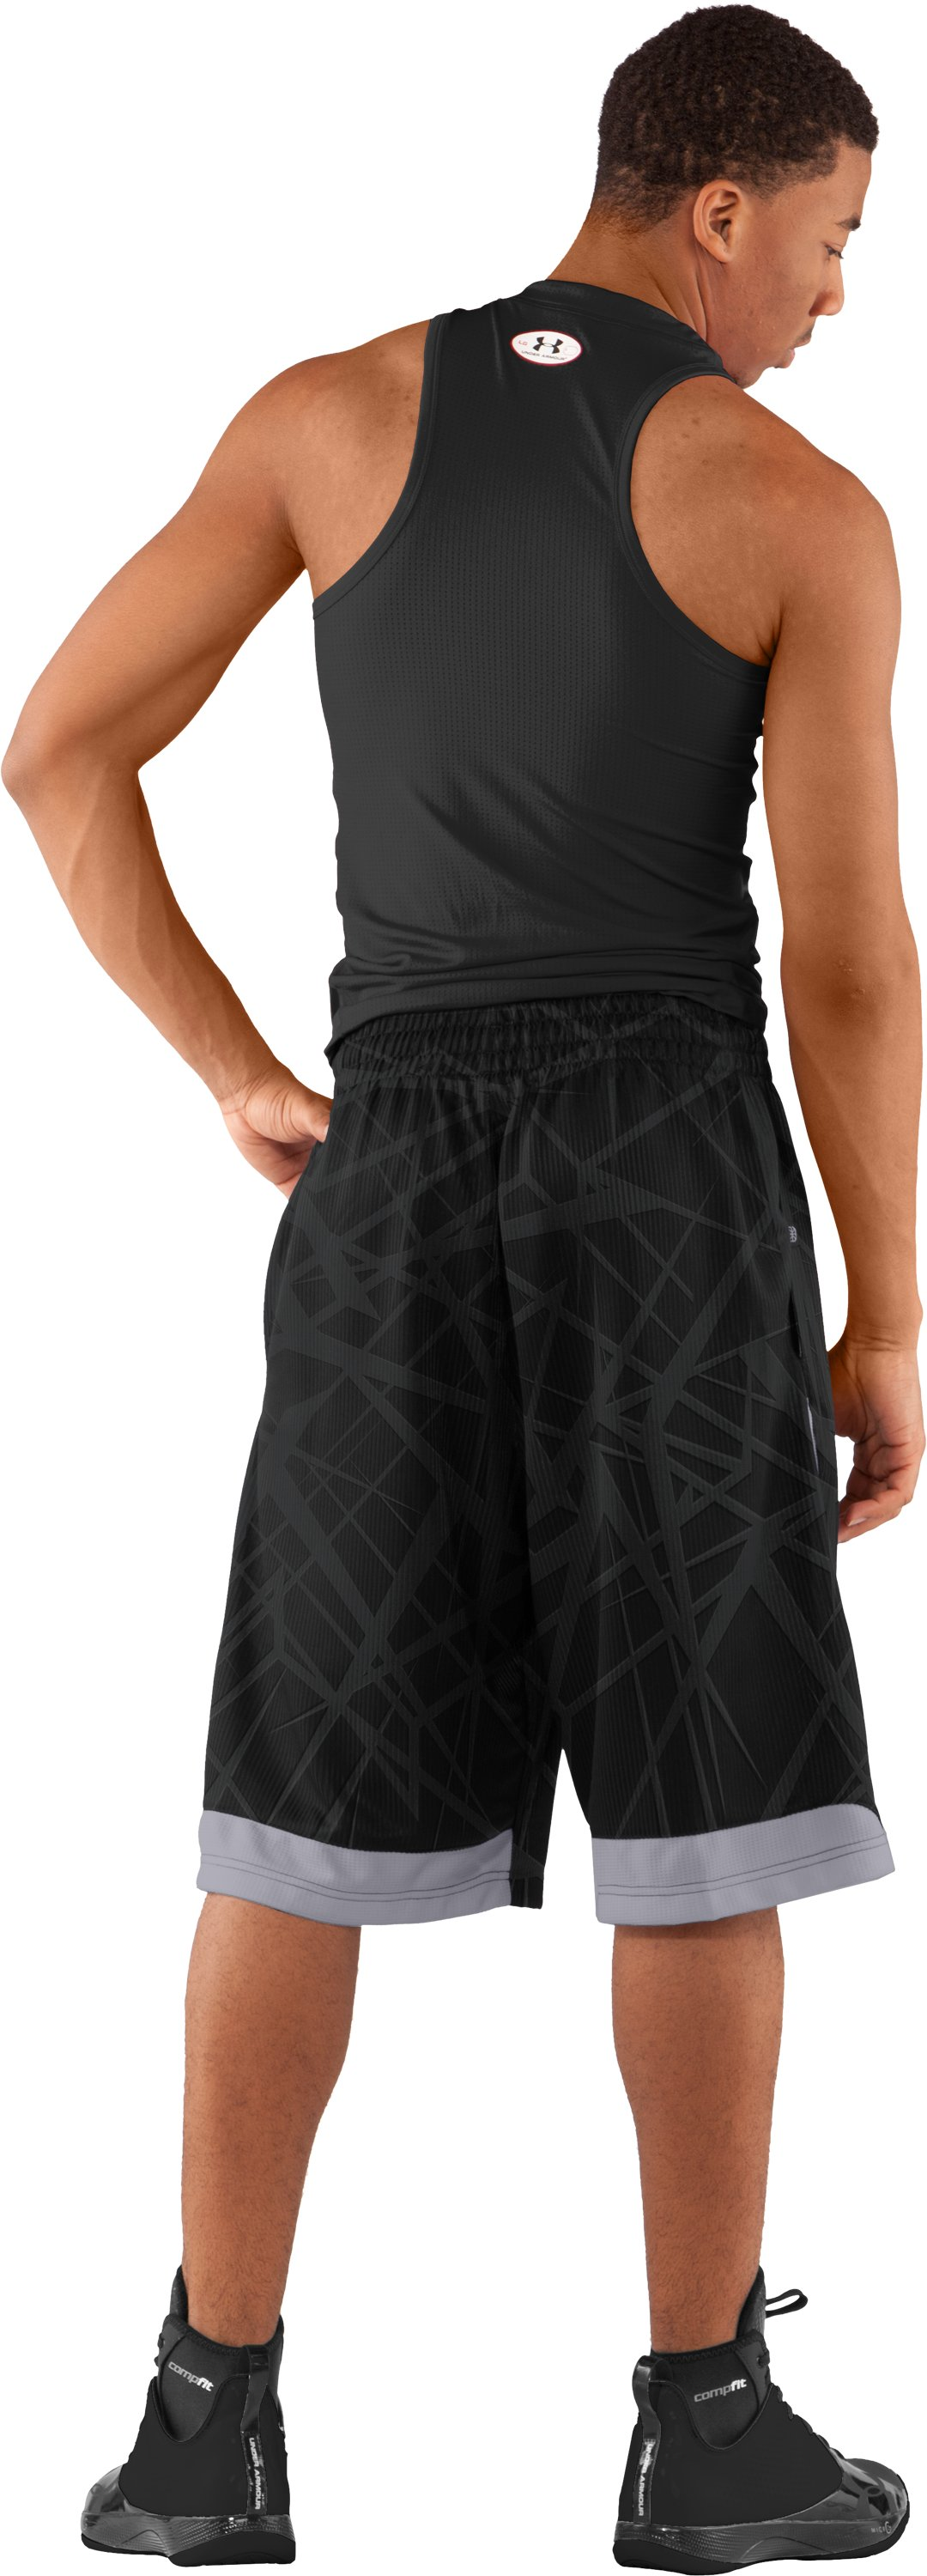 "Men's Printed UA Valkyrie 12"" Basketball Shorts, Black , Back"